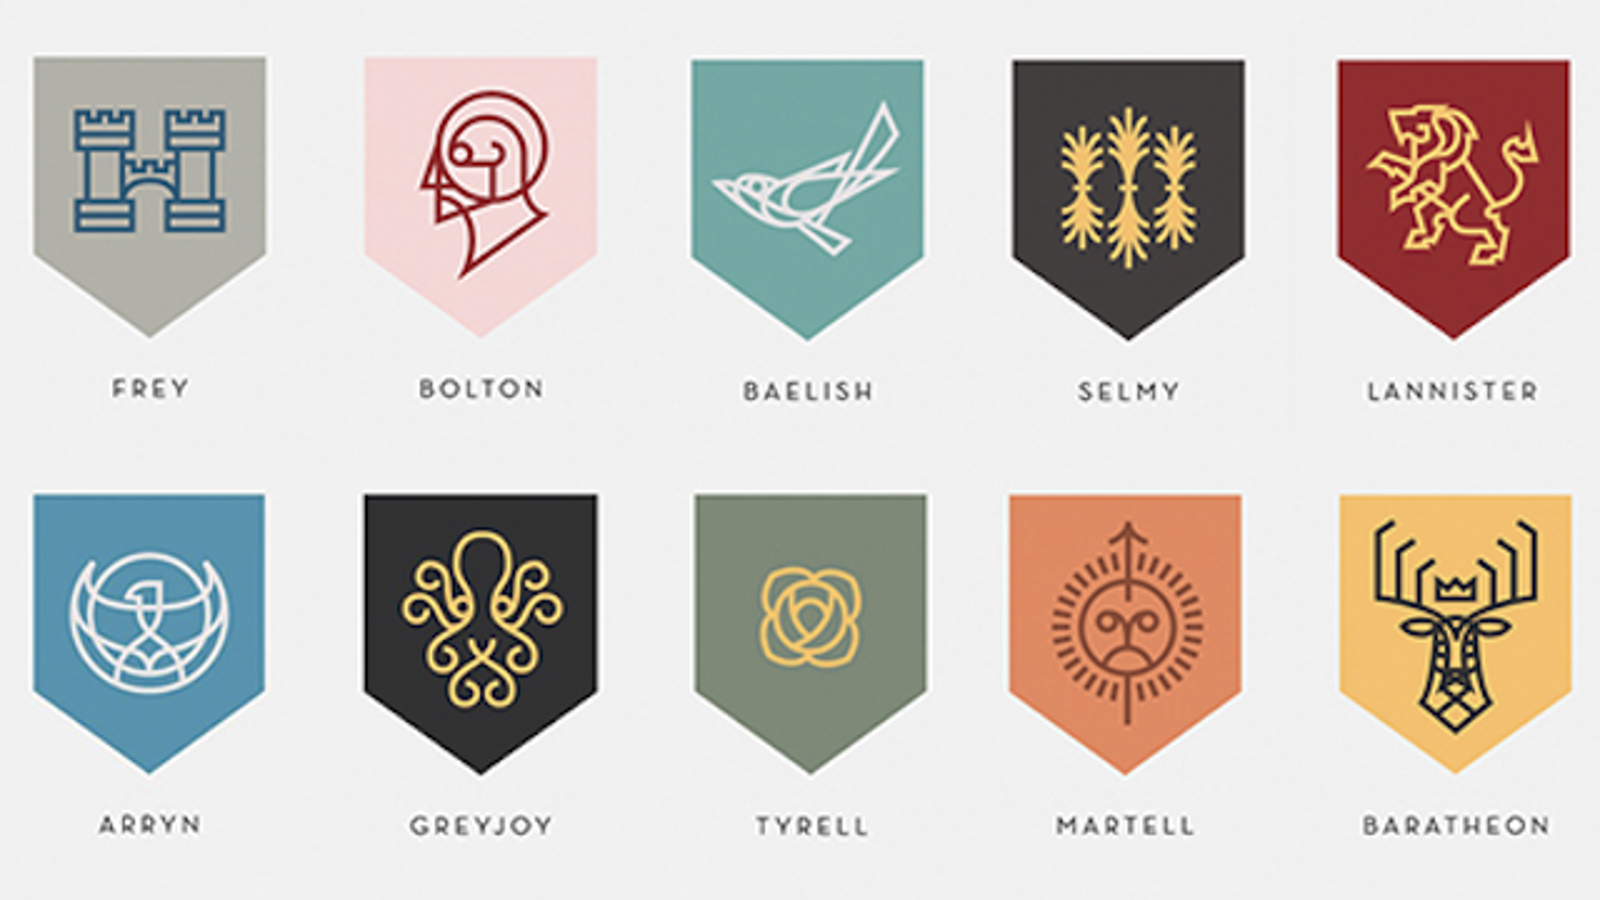 the game of thrones house sigils redesigned as corporate logos. Black Bedroom Furniture Sets. Home Design Ideas